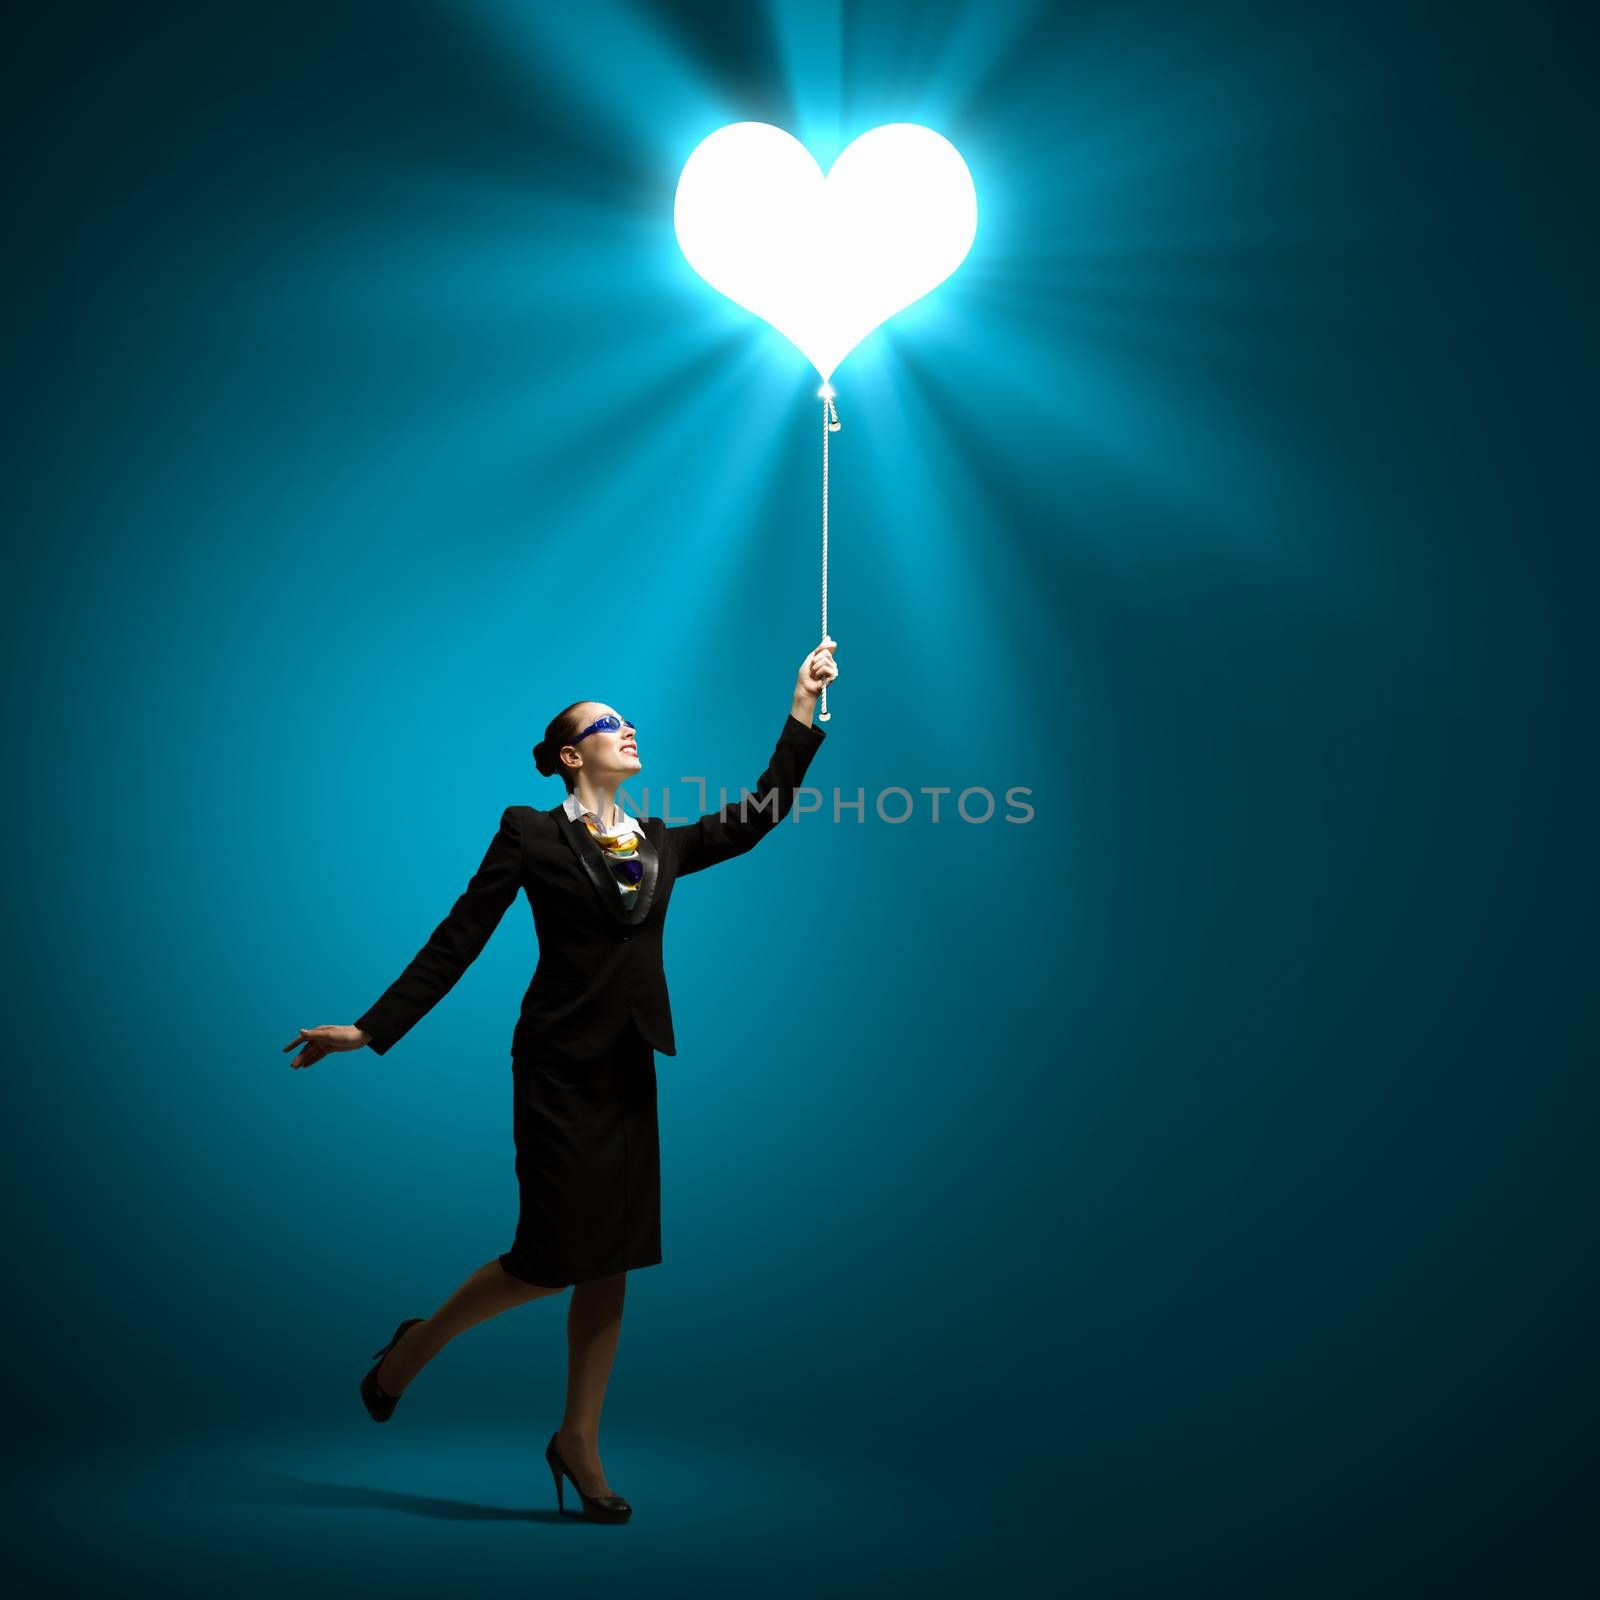 Image of businesswoman holding balloon with heart symbol